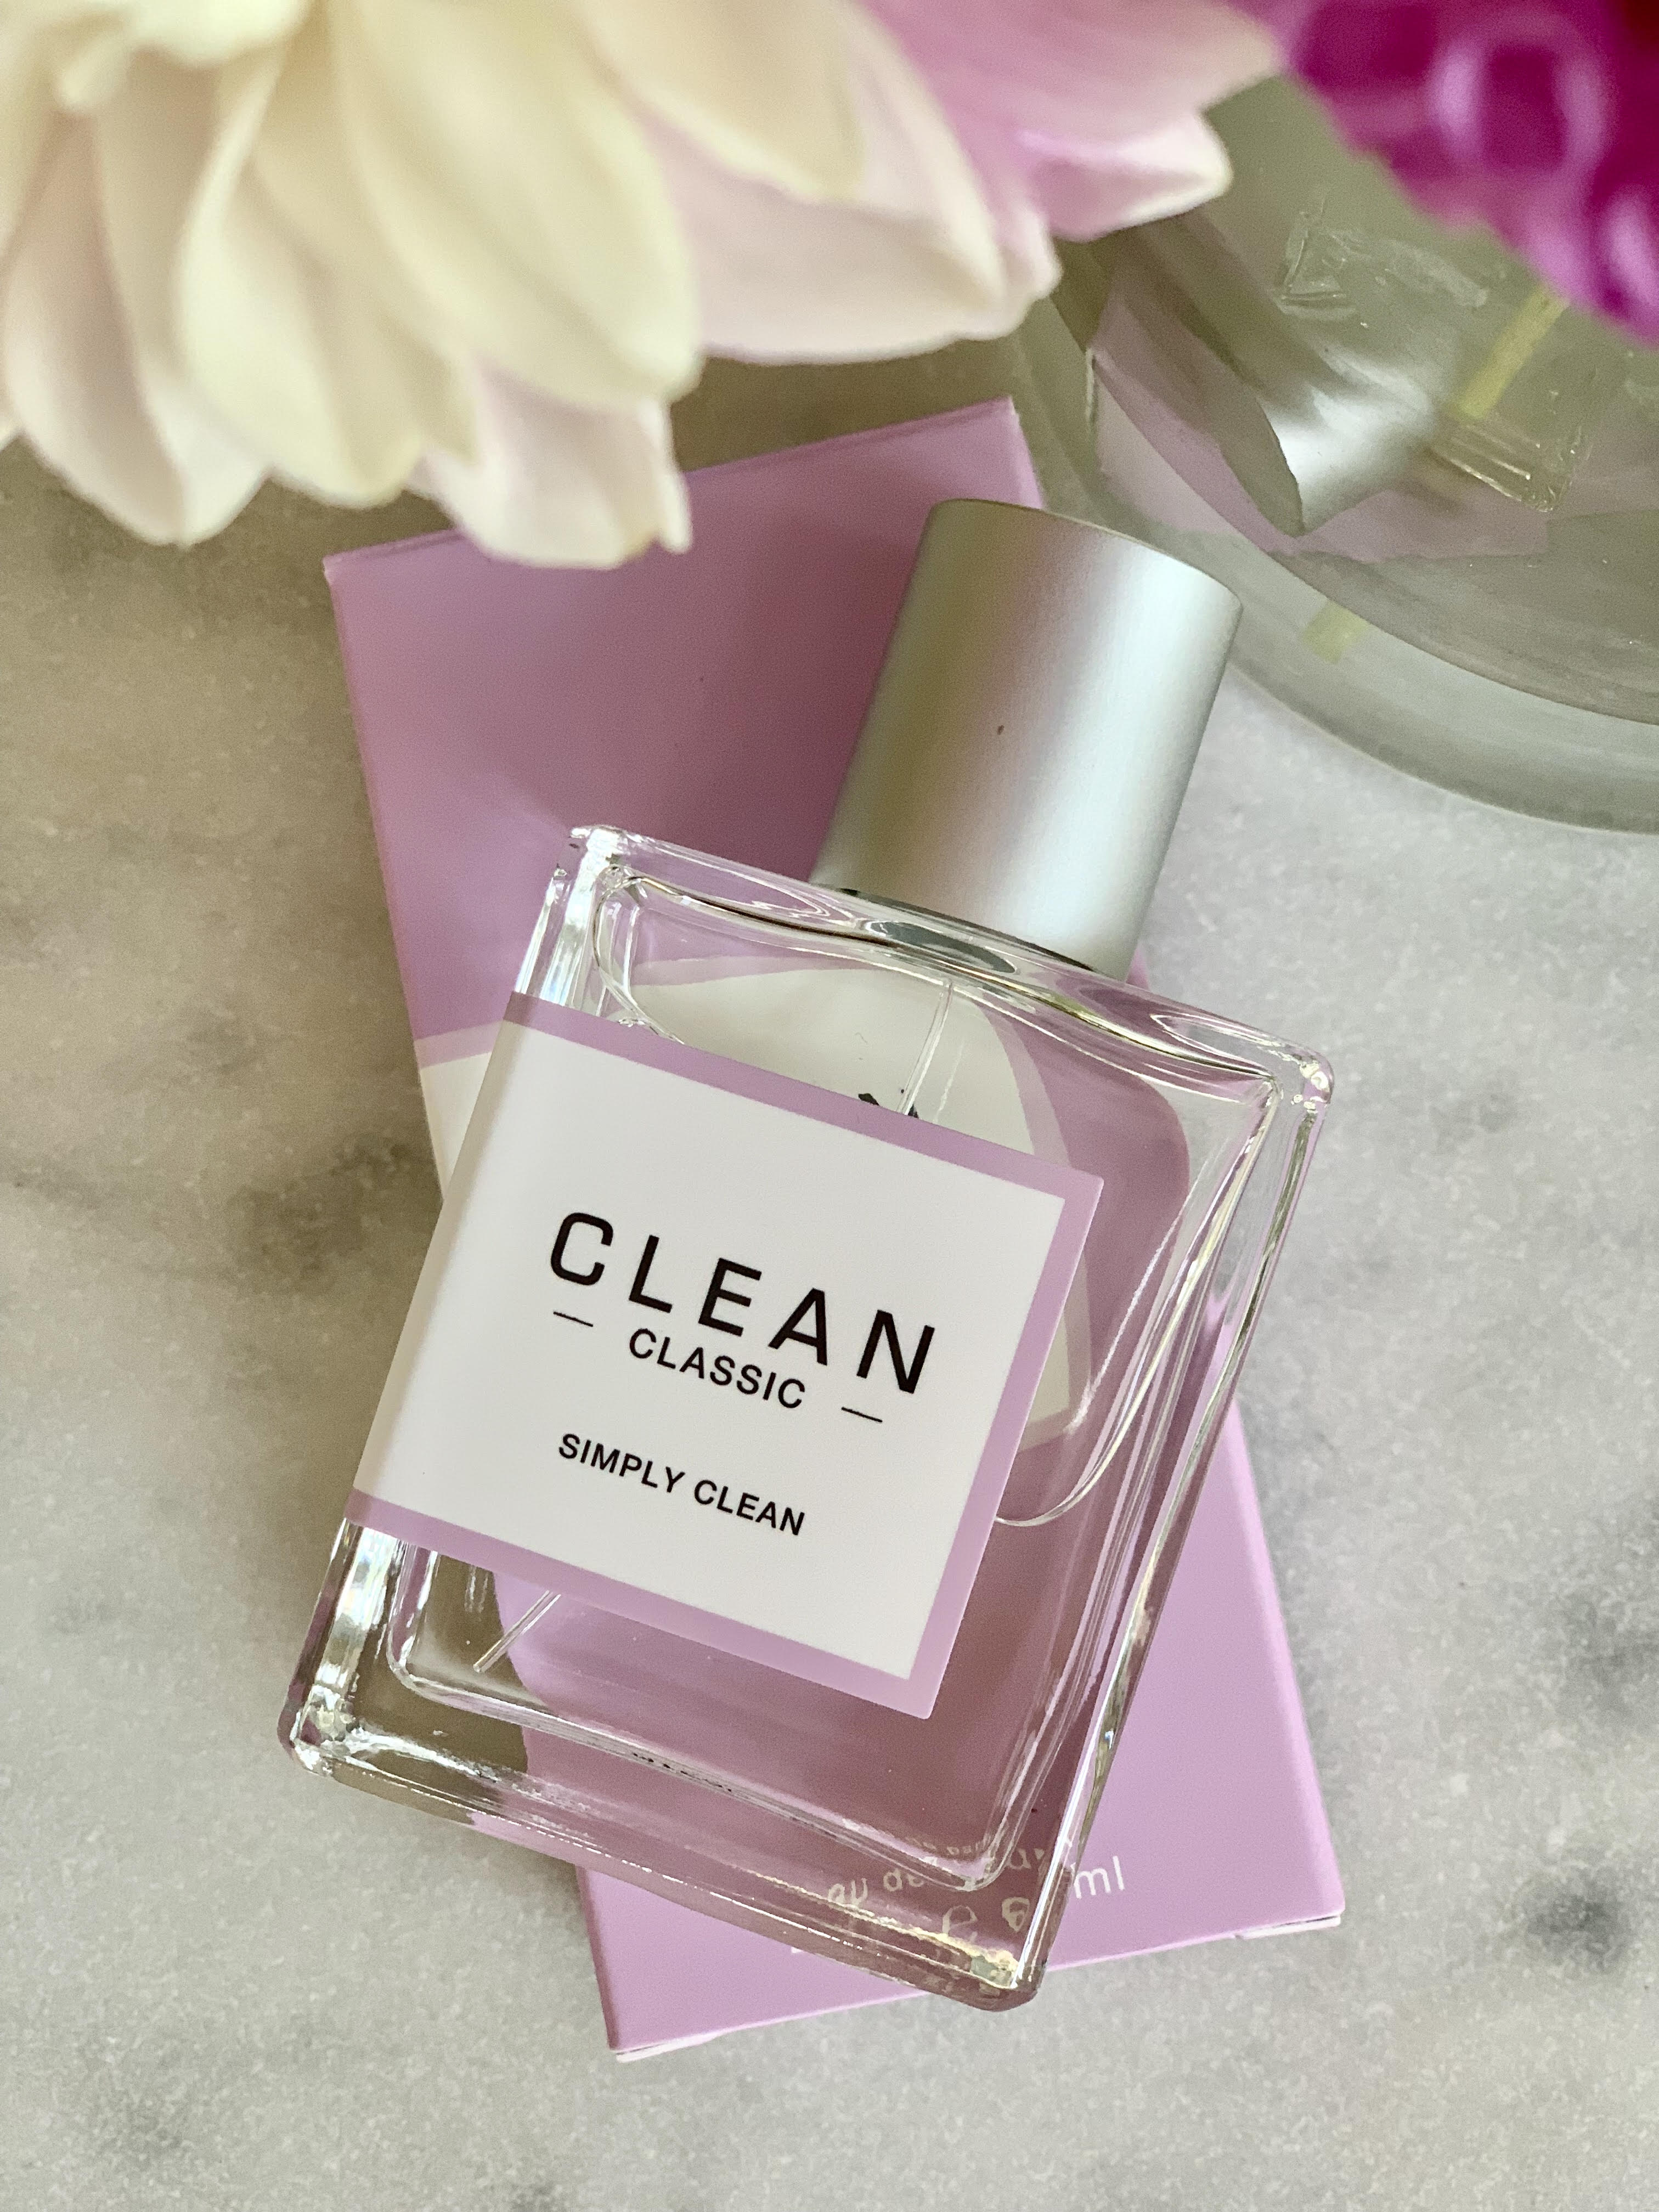 Simply Clean, Clean, parfume, konkurrence, duft,